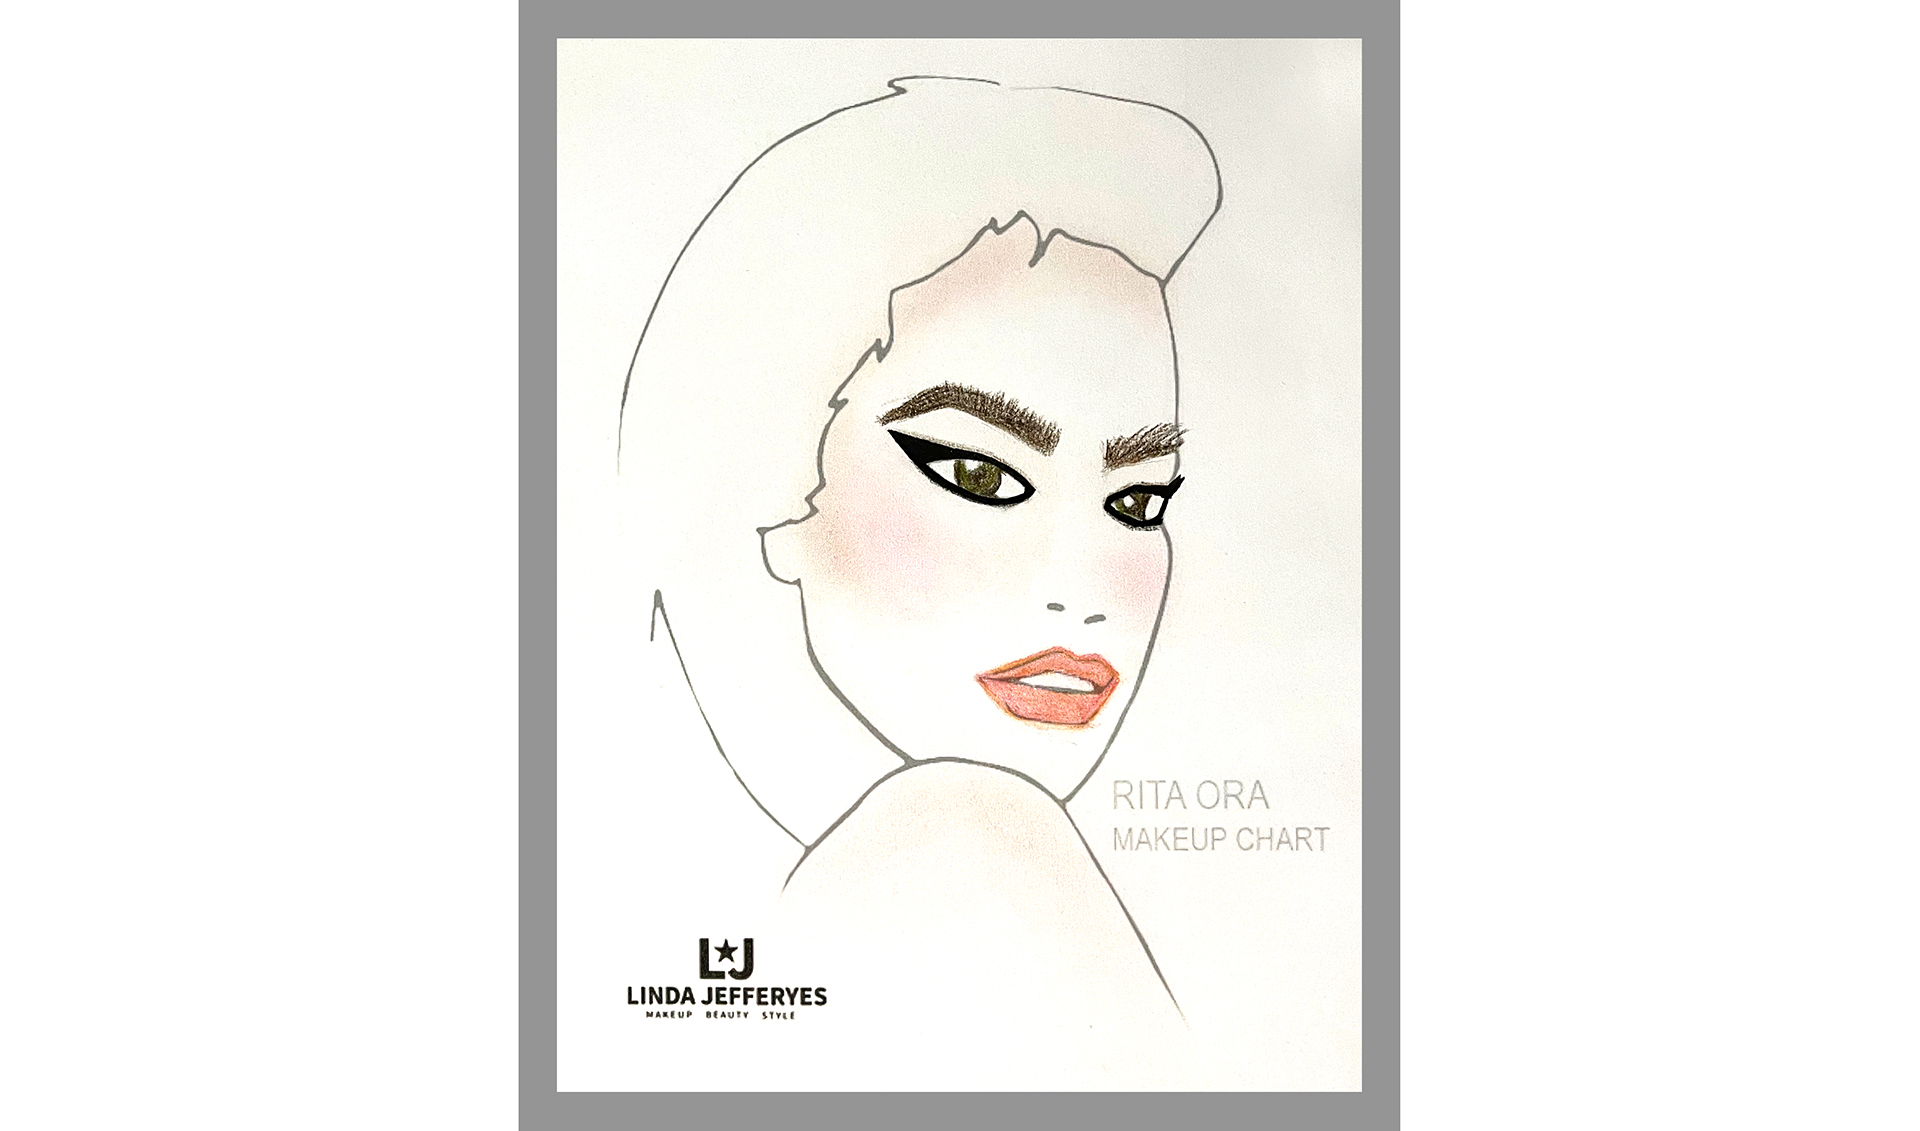 Rita Ora for The Voice - Makeup Chart by Linda Jefferyes